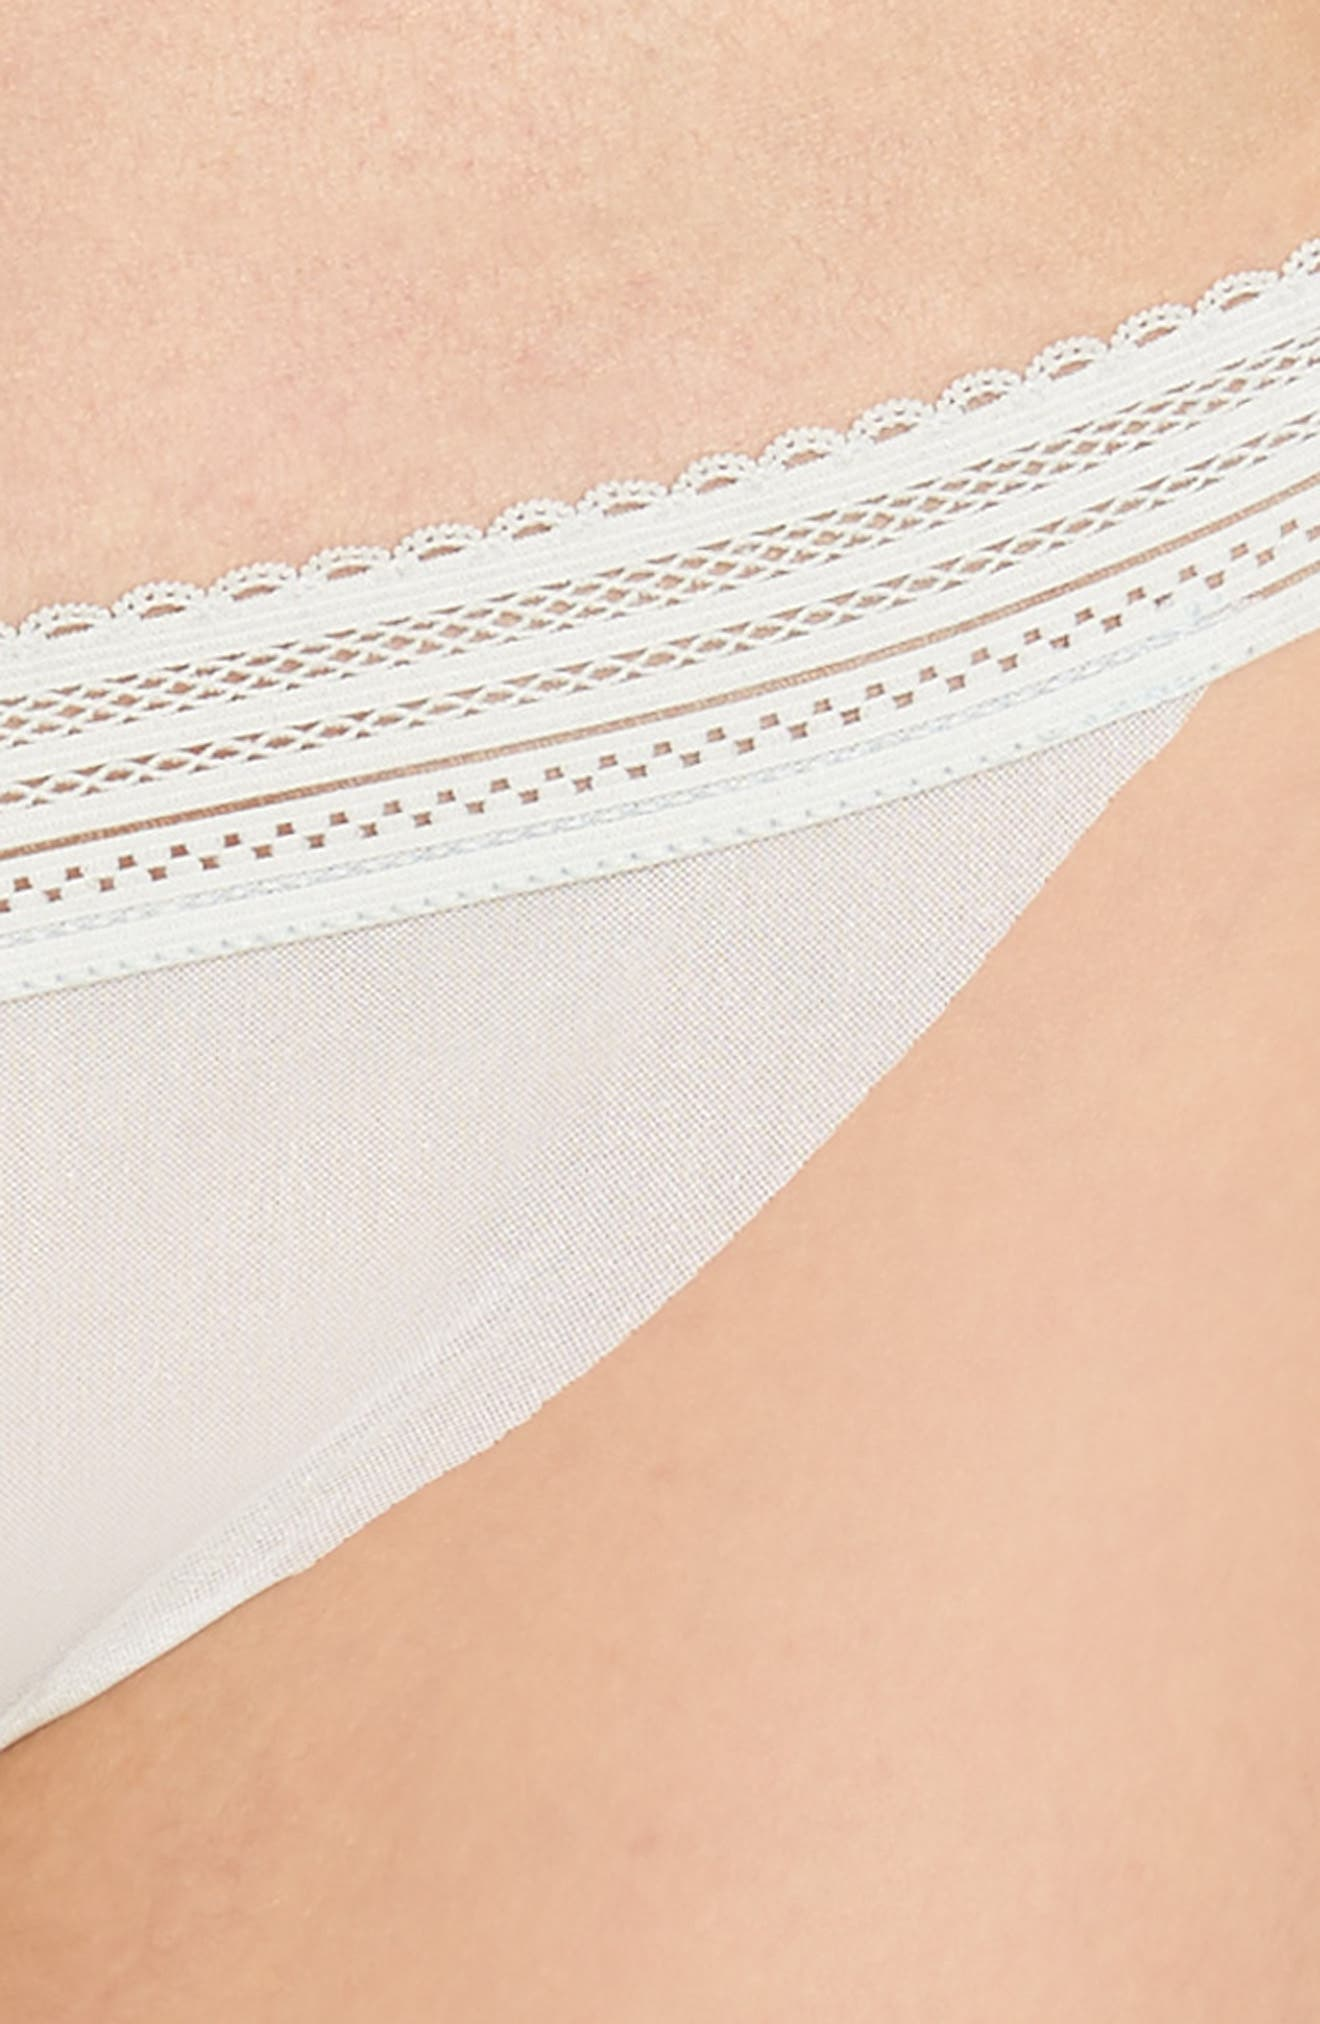 Laced In Aire Thong,                             Alternate thumbnail 4, color,                             300